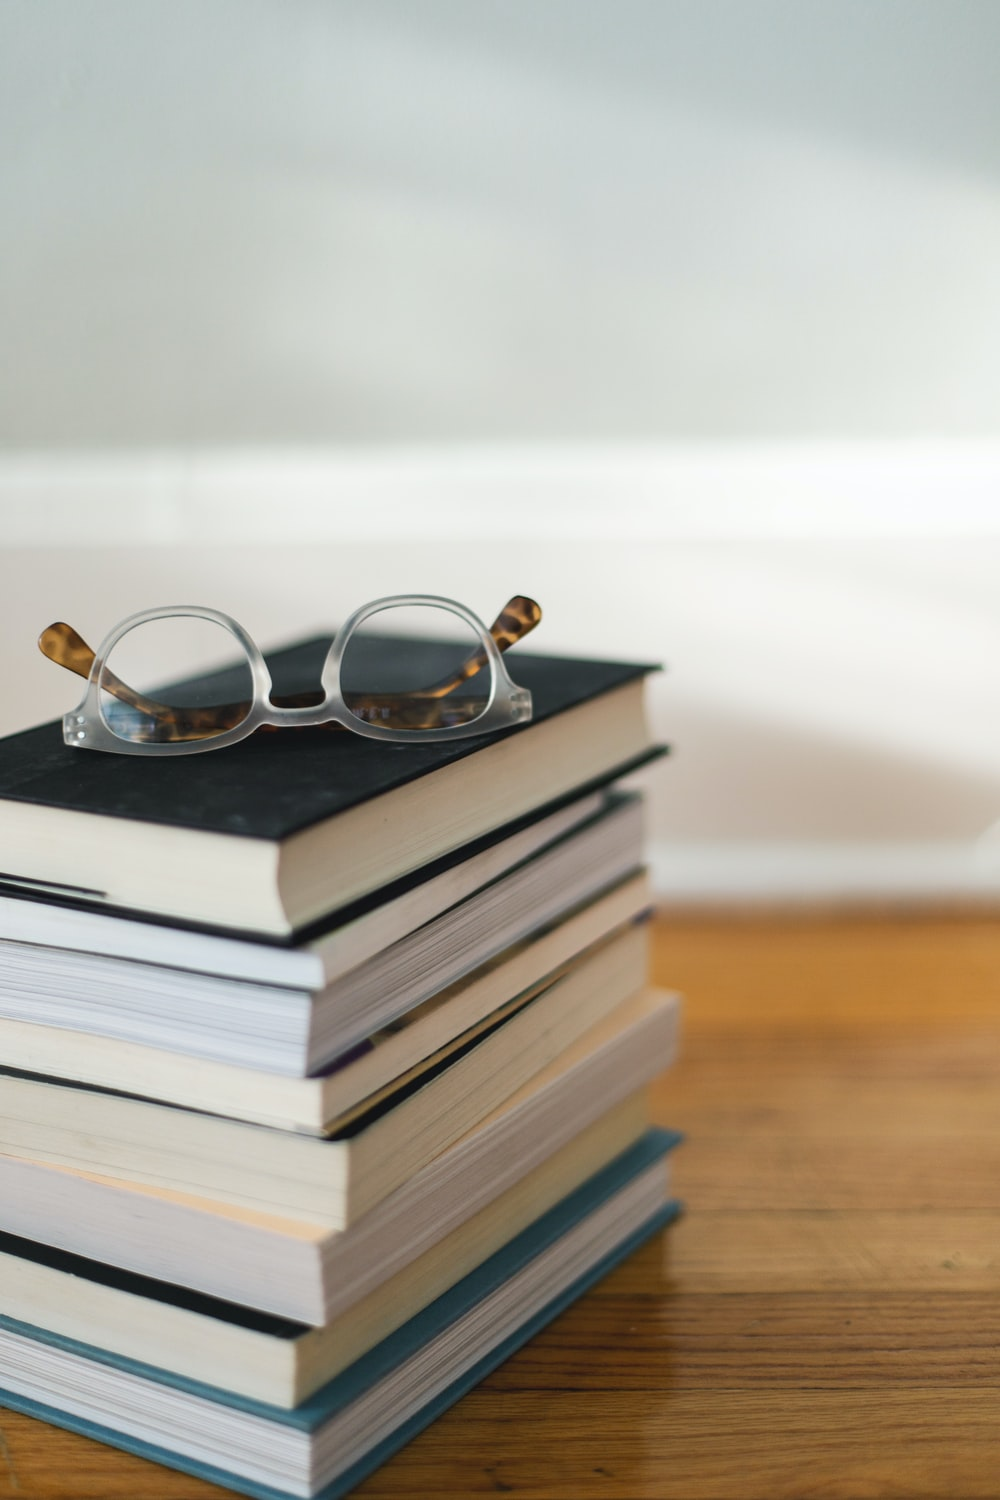 clear framed eyeglasses on top of pile of books